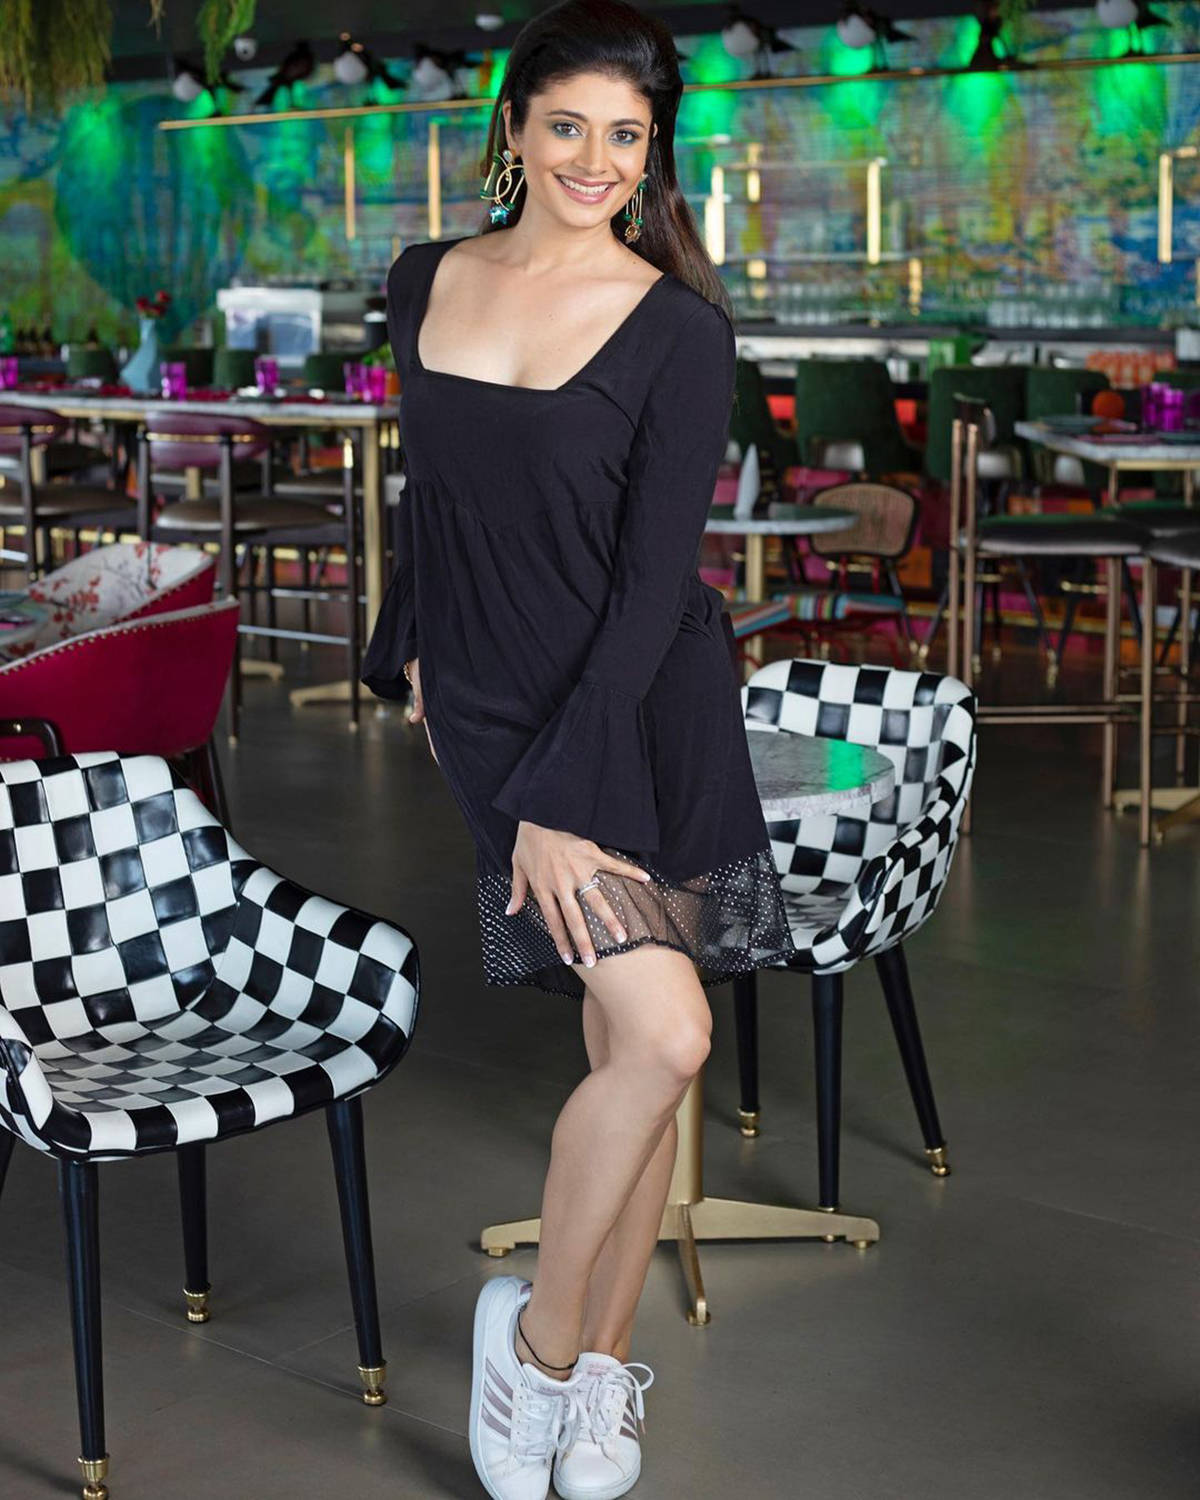 Pooja Batra is making new waves on the net with her glamorous photos